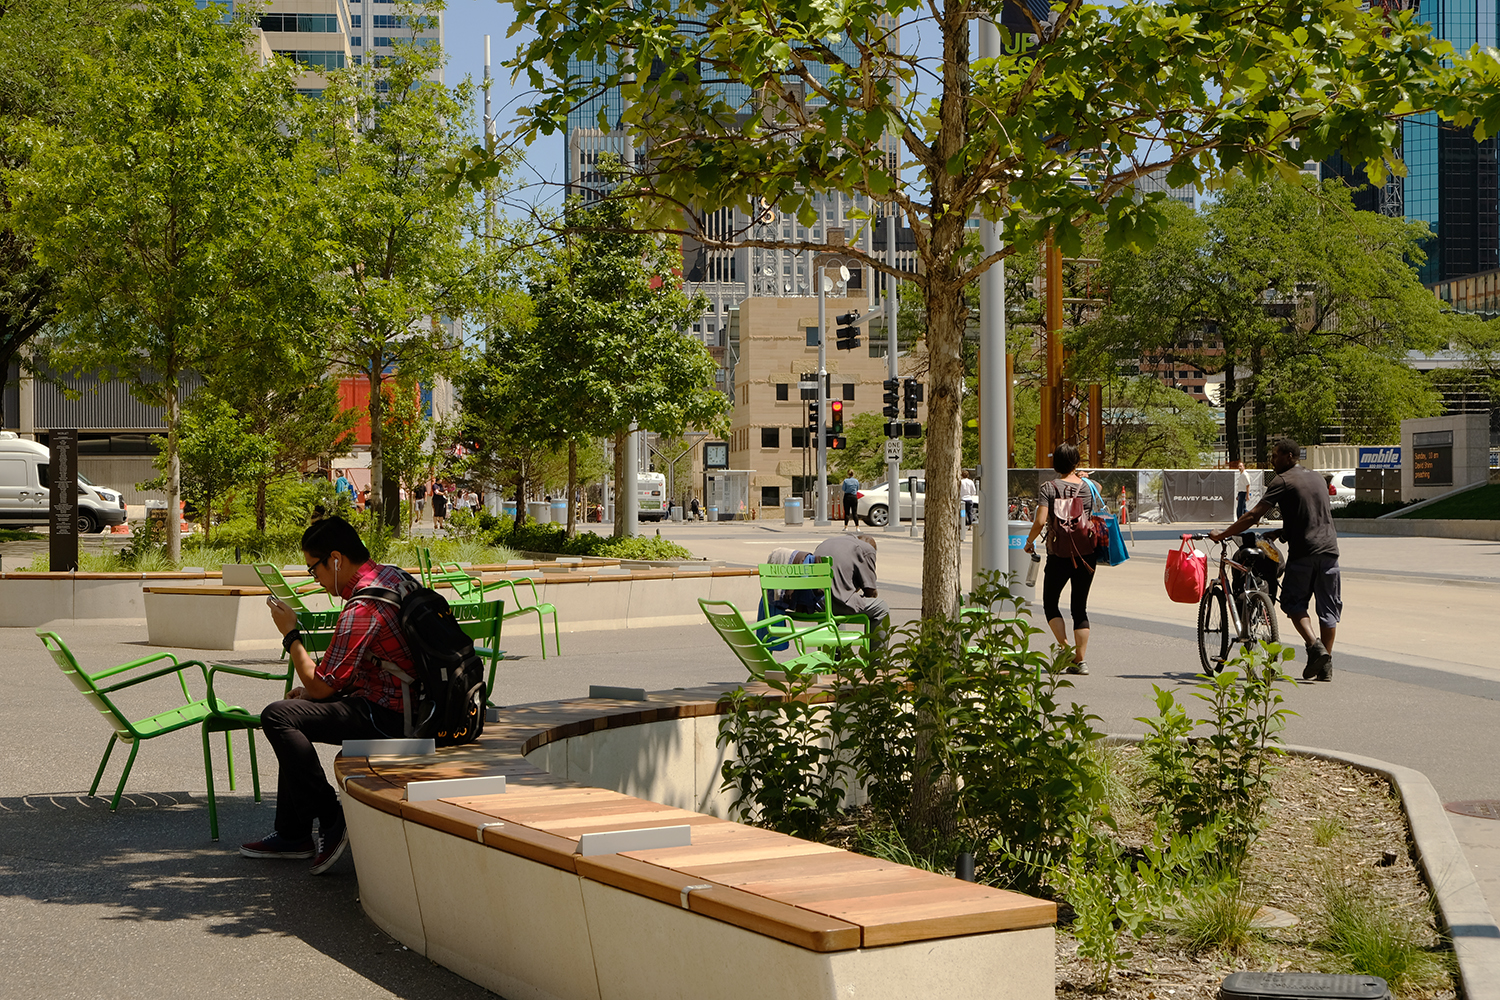 Loring Woods, at the south end of Nicollet, features moveable chairs, curved seat walls and planters.